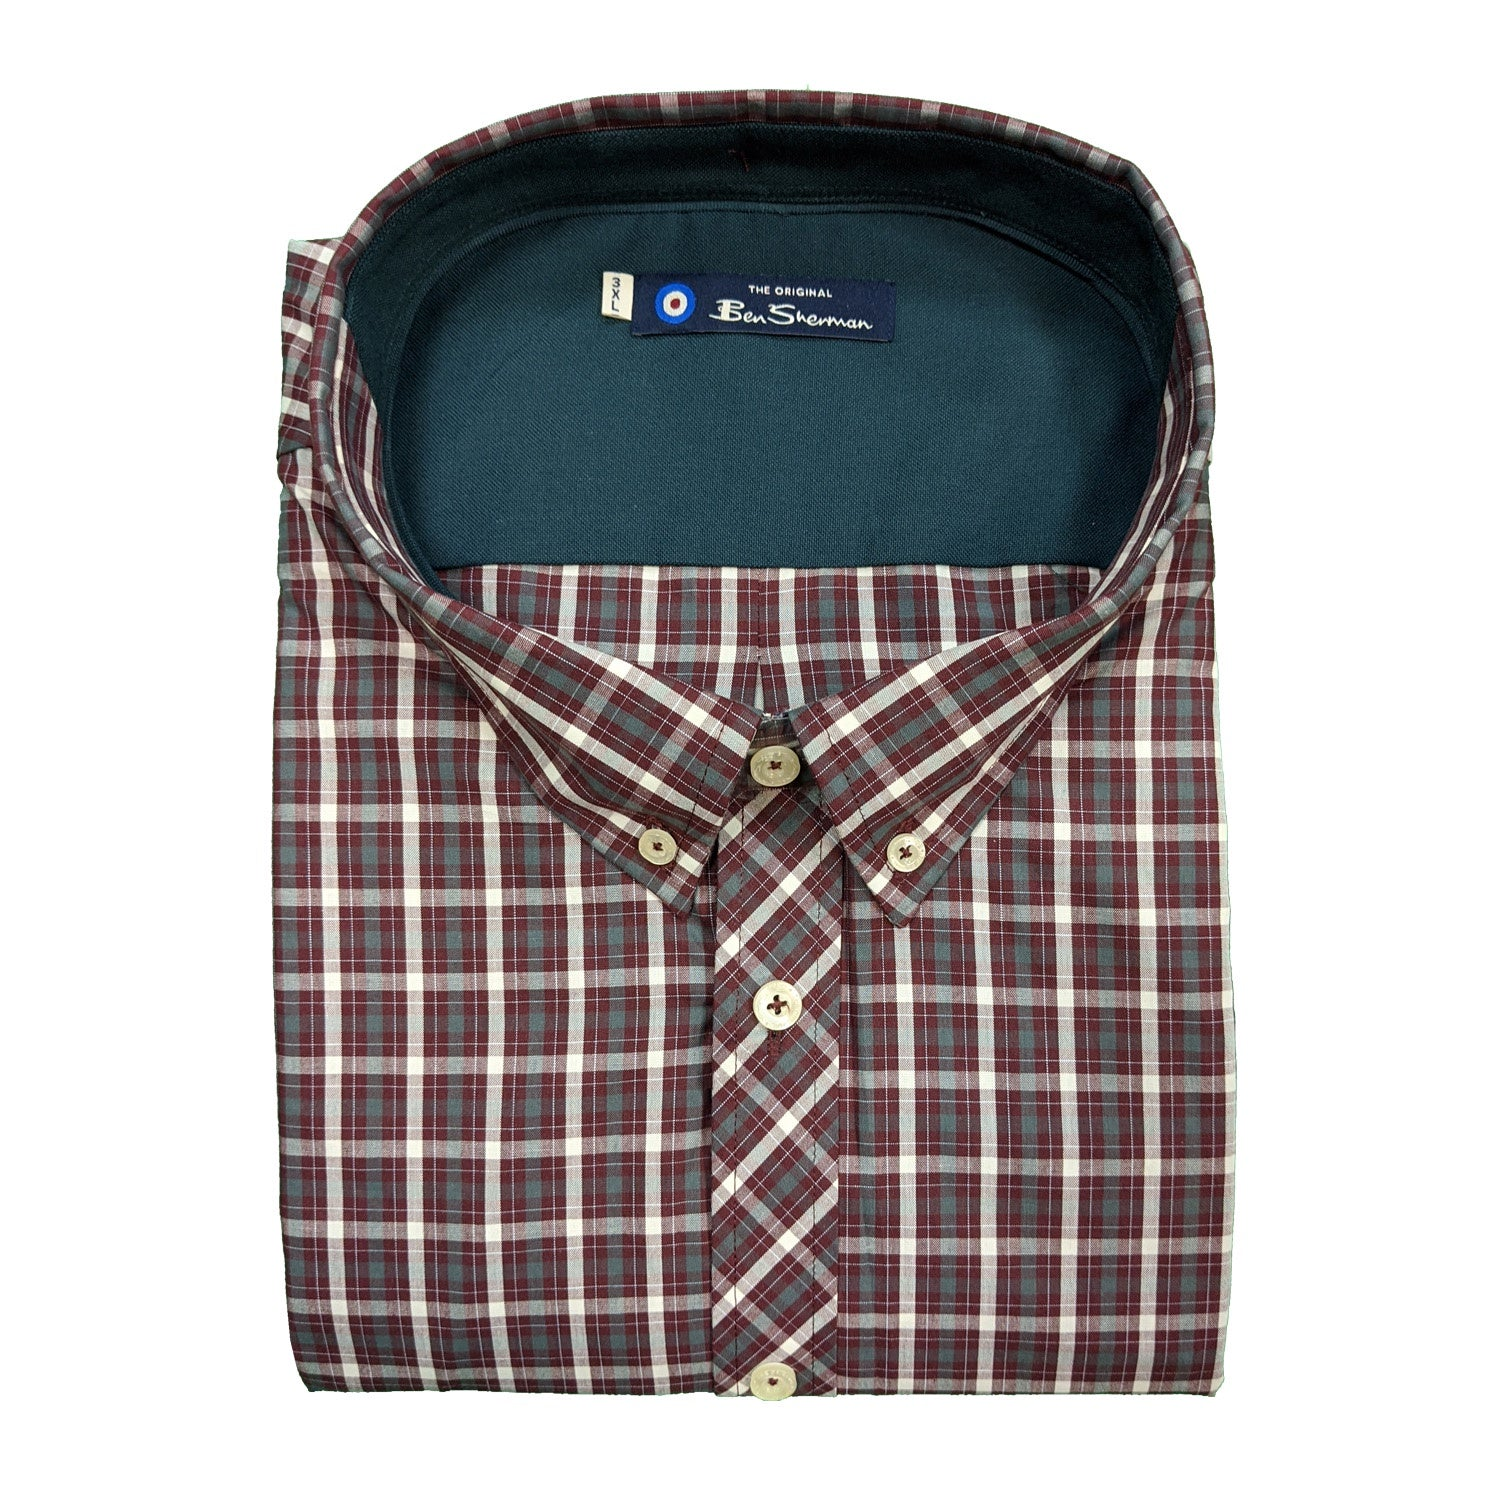 Ben Sherman L/S Shirt - 0048563IL - Wine